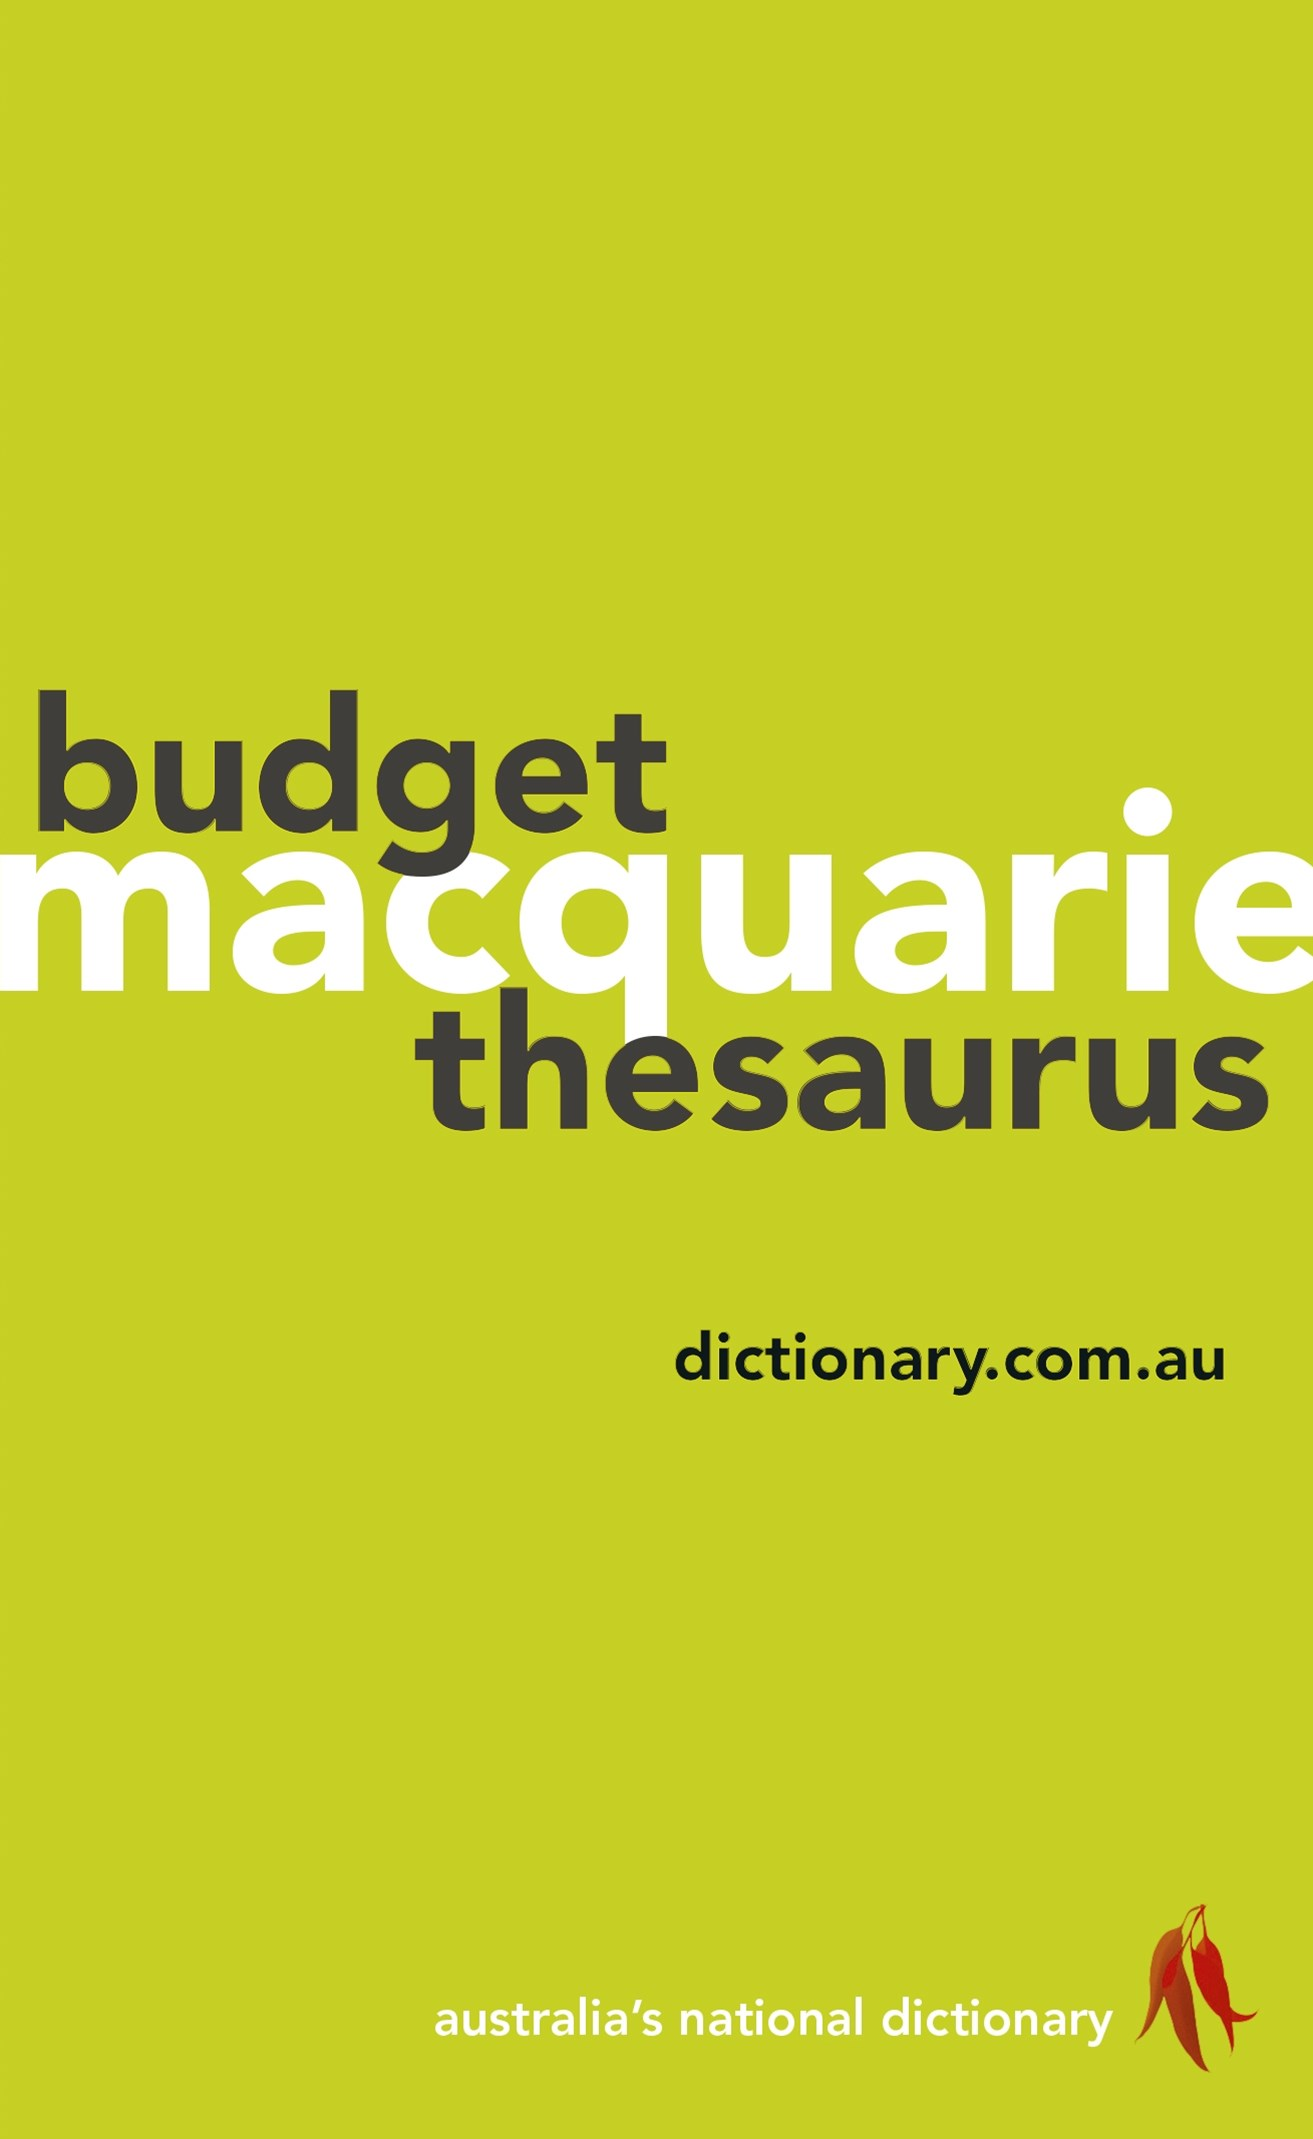 Macquarie Budget Thesaurus